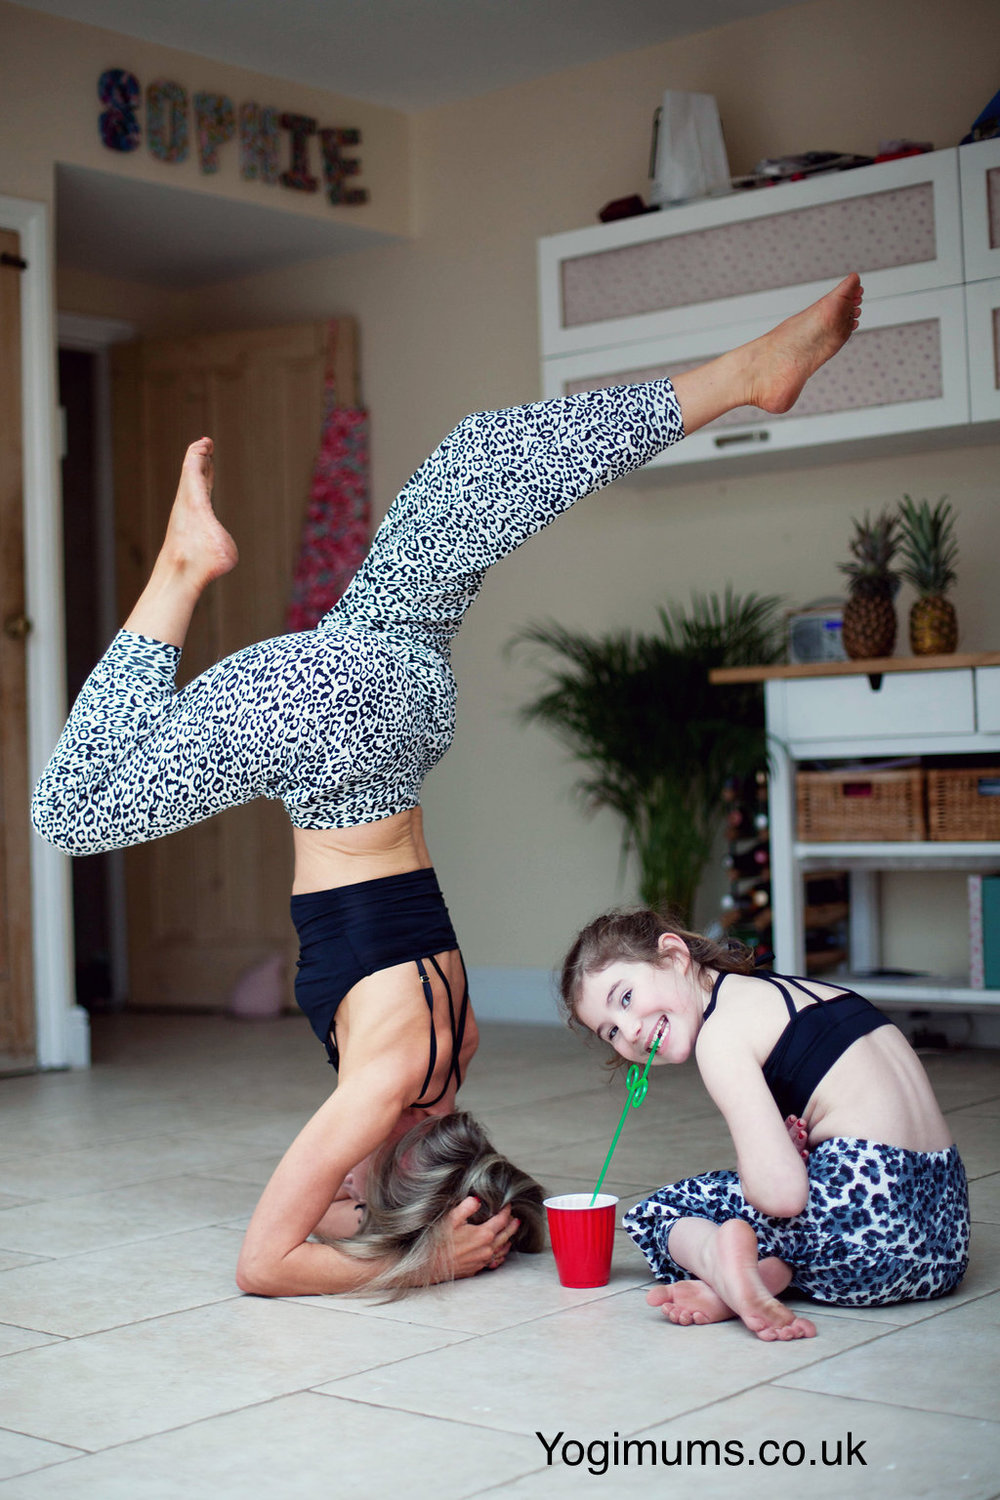 yoga with children. yoga in kitchen. yoga fun with kids. headstand. online yoga. playful yoga. yoga in Bristol. Yogimums